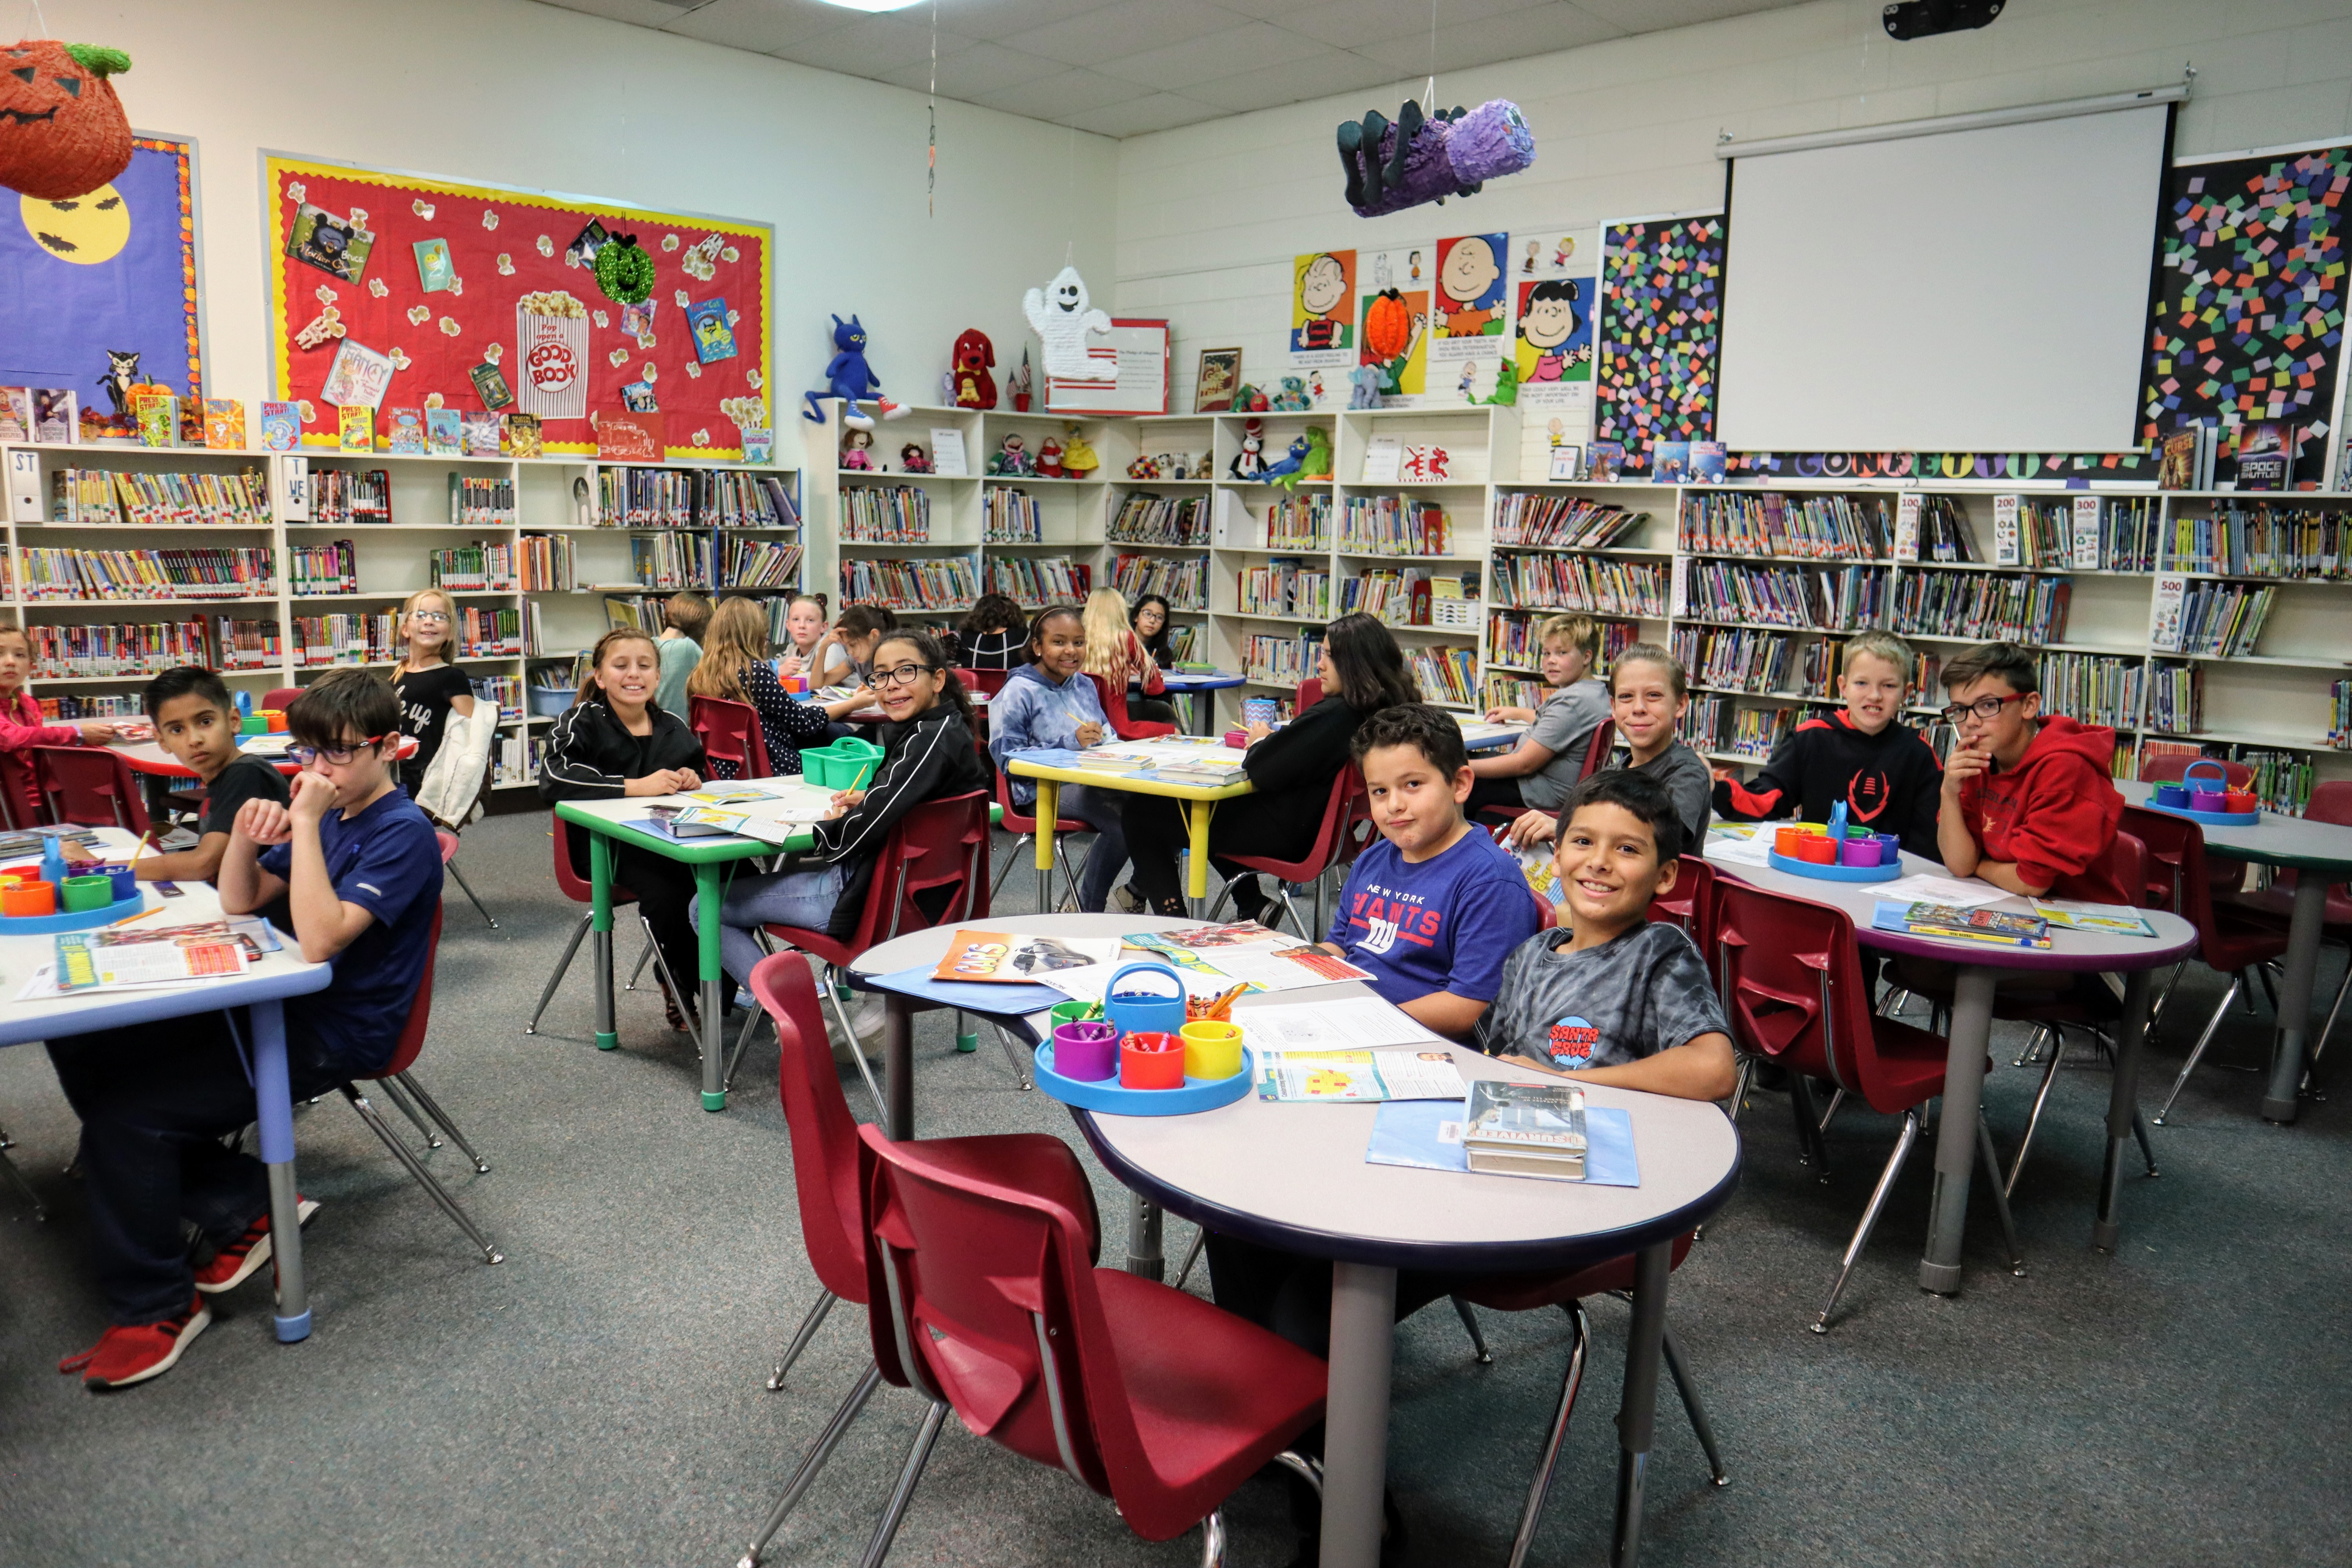 Students at Monterrey Elementary